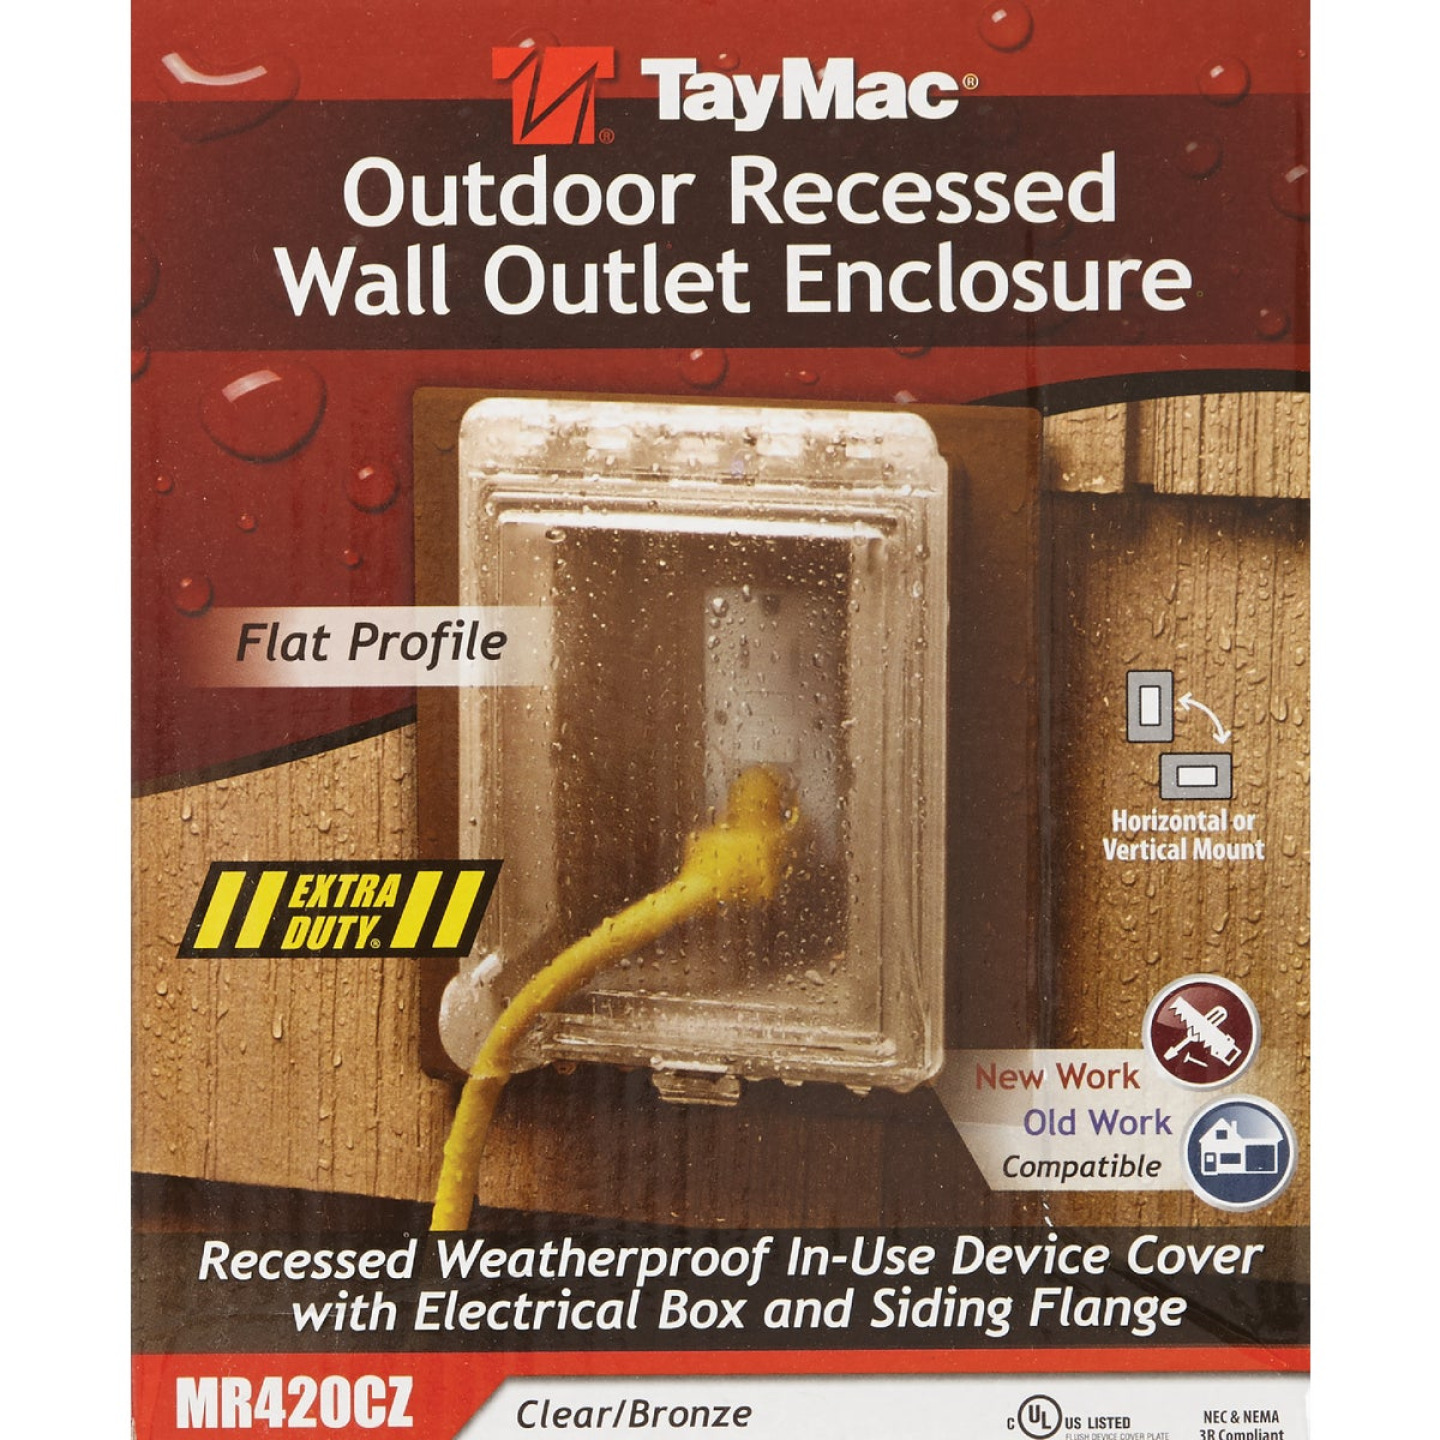 TayMac Bronze Vertical/Horizontal Non-Metallic Recessed Outdoor Outlet Kit Image 2